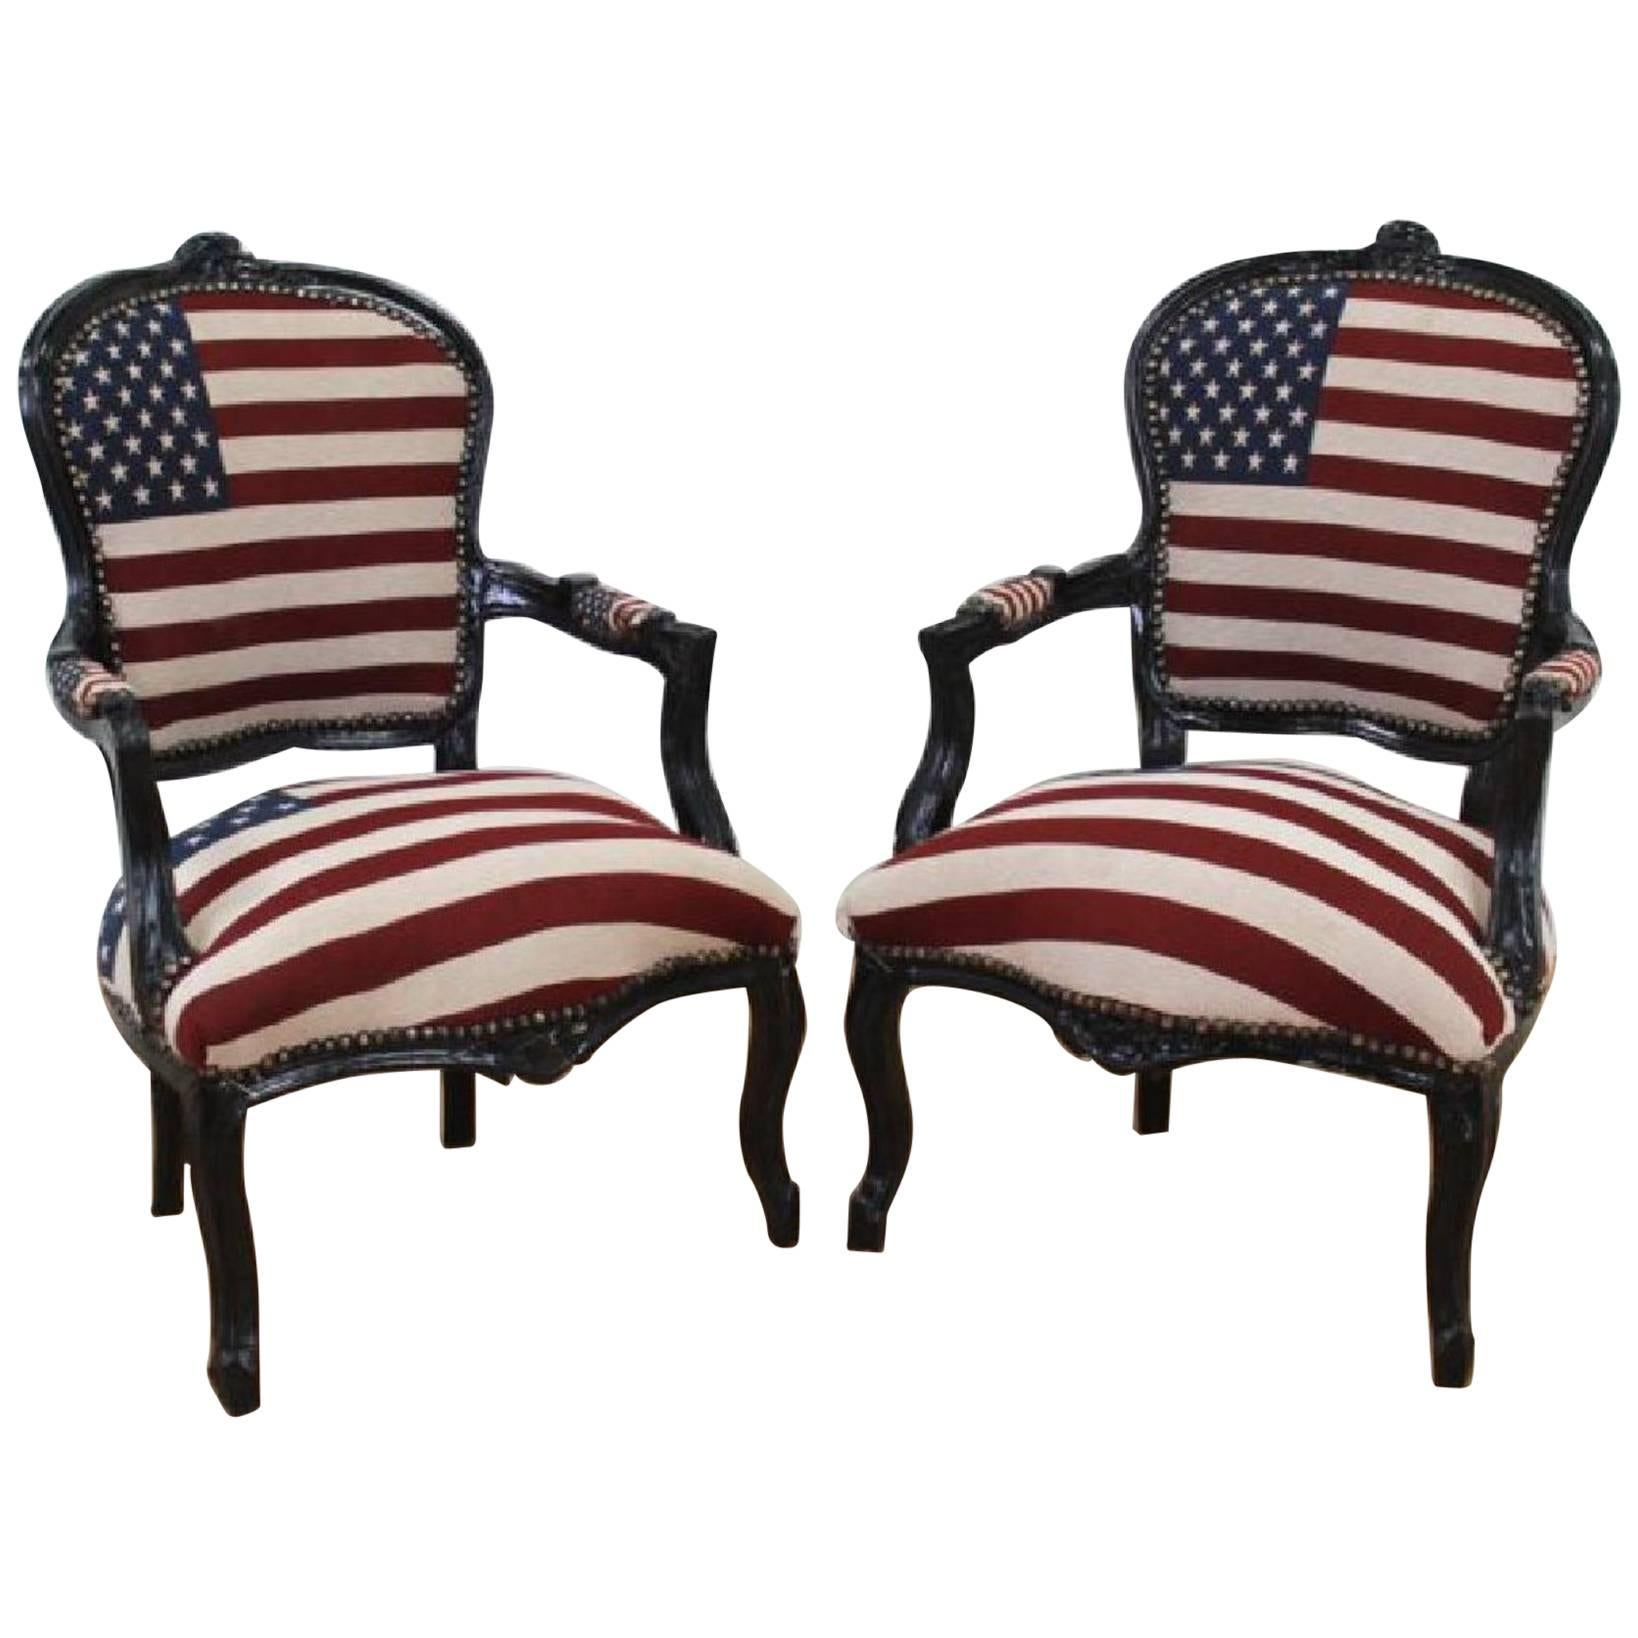 Louisiana Purchase Chairs Old Glory Upholstered Black Lacquered Fauteuils Pair For Sale  sc 1 st  1stDibs & Louisiana Purchase Chairs